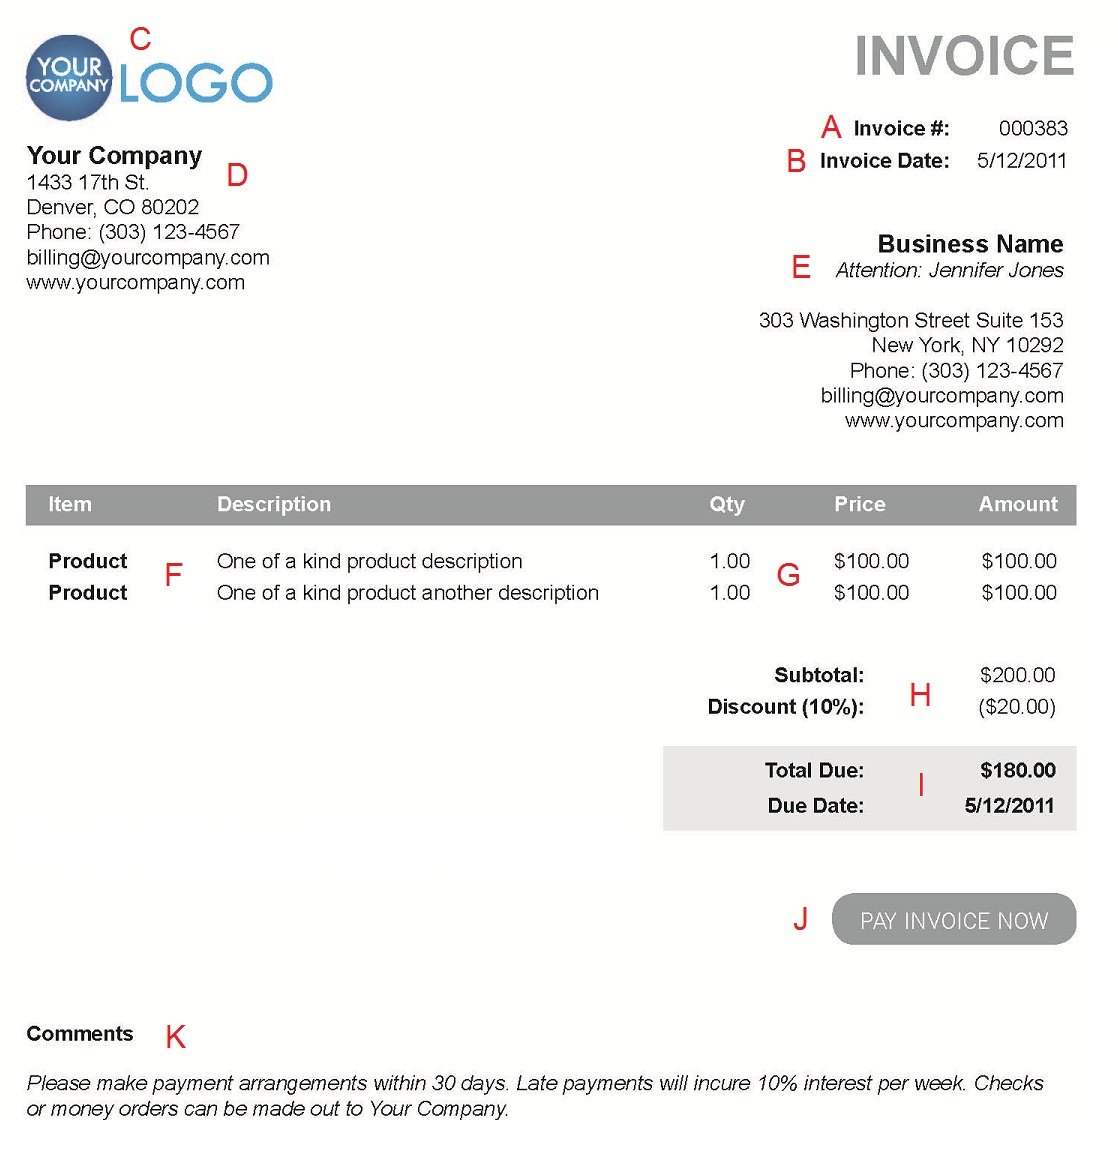 Coolmathgamesus  Seductive The  Different Sections Of An Electronic Payment Invoice With Gorgeous A  With Amusing Create An Invoice Also Commercial Invoice Template In Addition Invoices To Go And Simple Invoice Template As Well As Blank Invoice Template Additionally Pro Forma Invoice From Paysimplecom With Coolmathgamesus  Gorgeous The  Different Sections Of An Electronic Payment Invoice With Amusing A  And Seductive Create An Invoice Also Commercial Invoice Template In Addition Invoices To Go From Paysimplecom